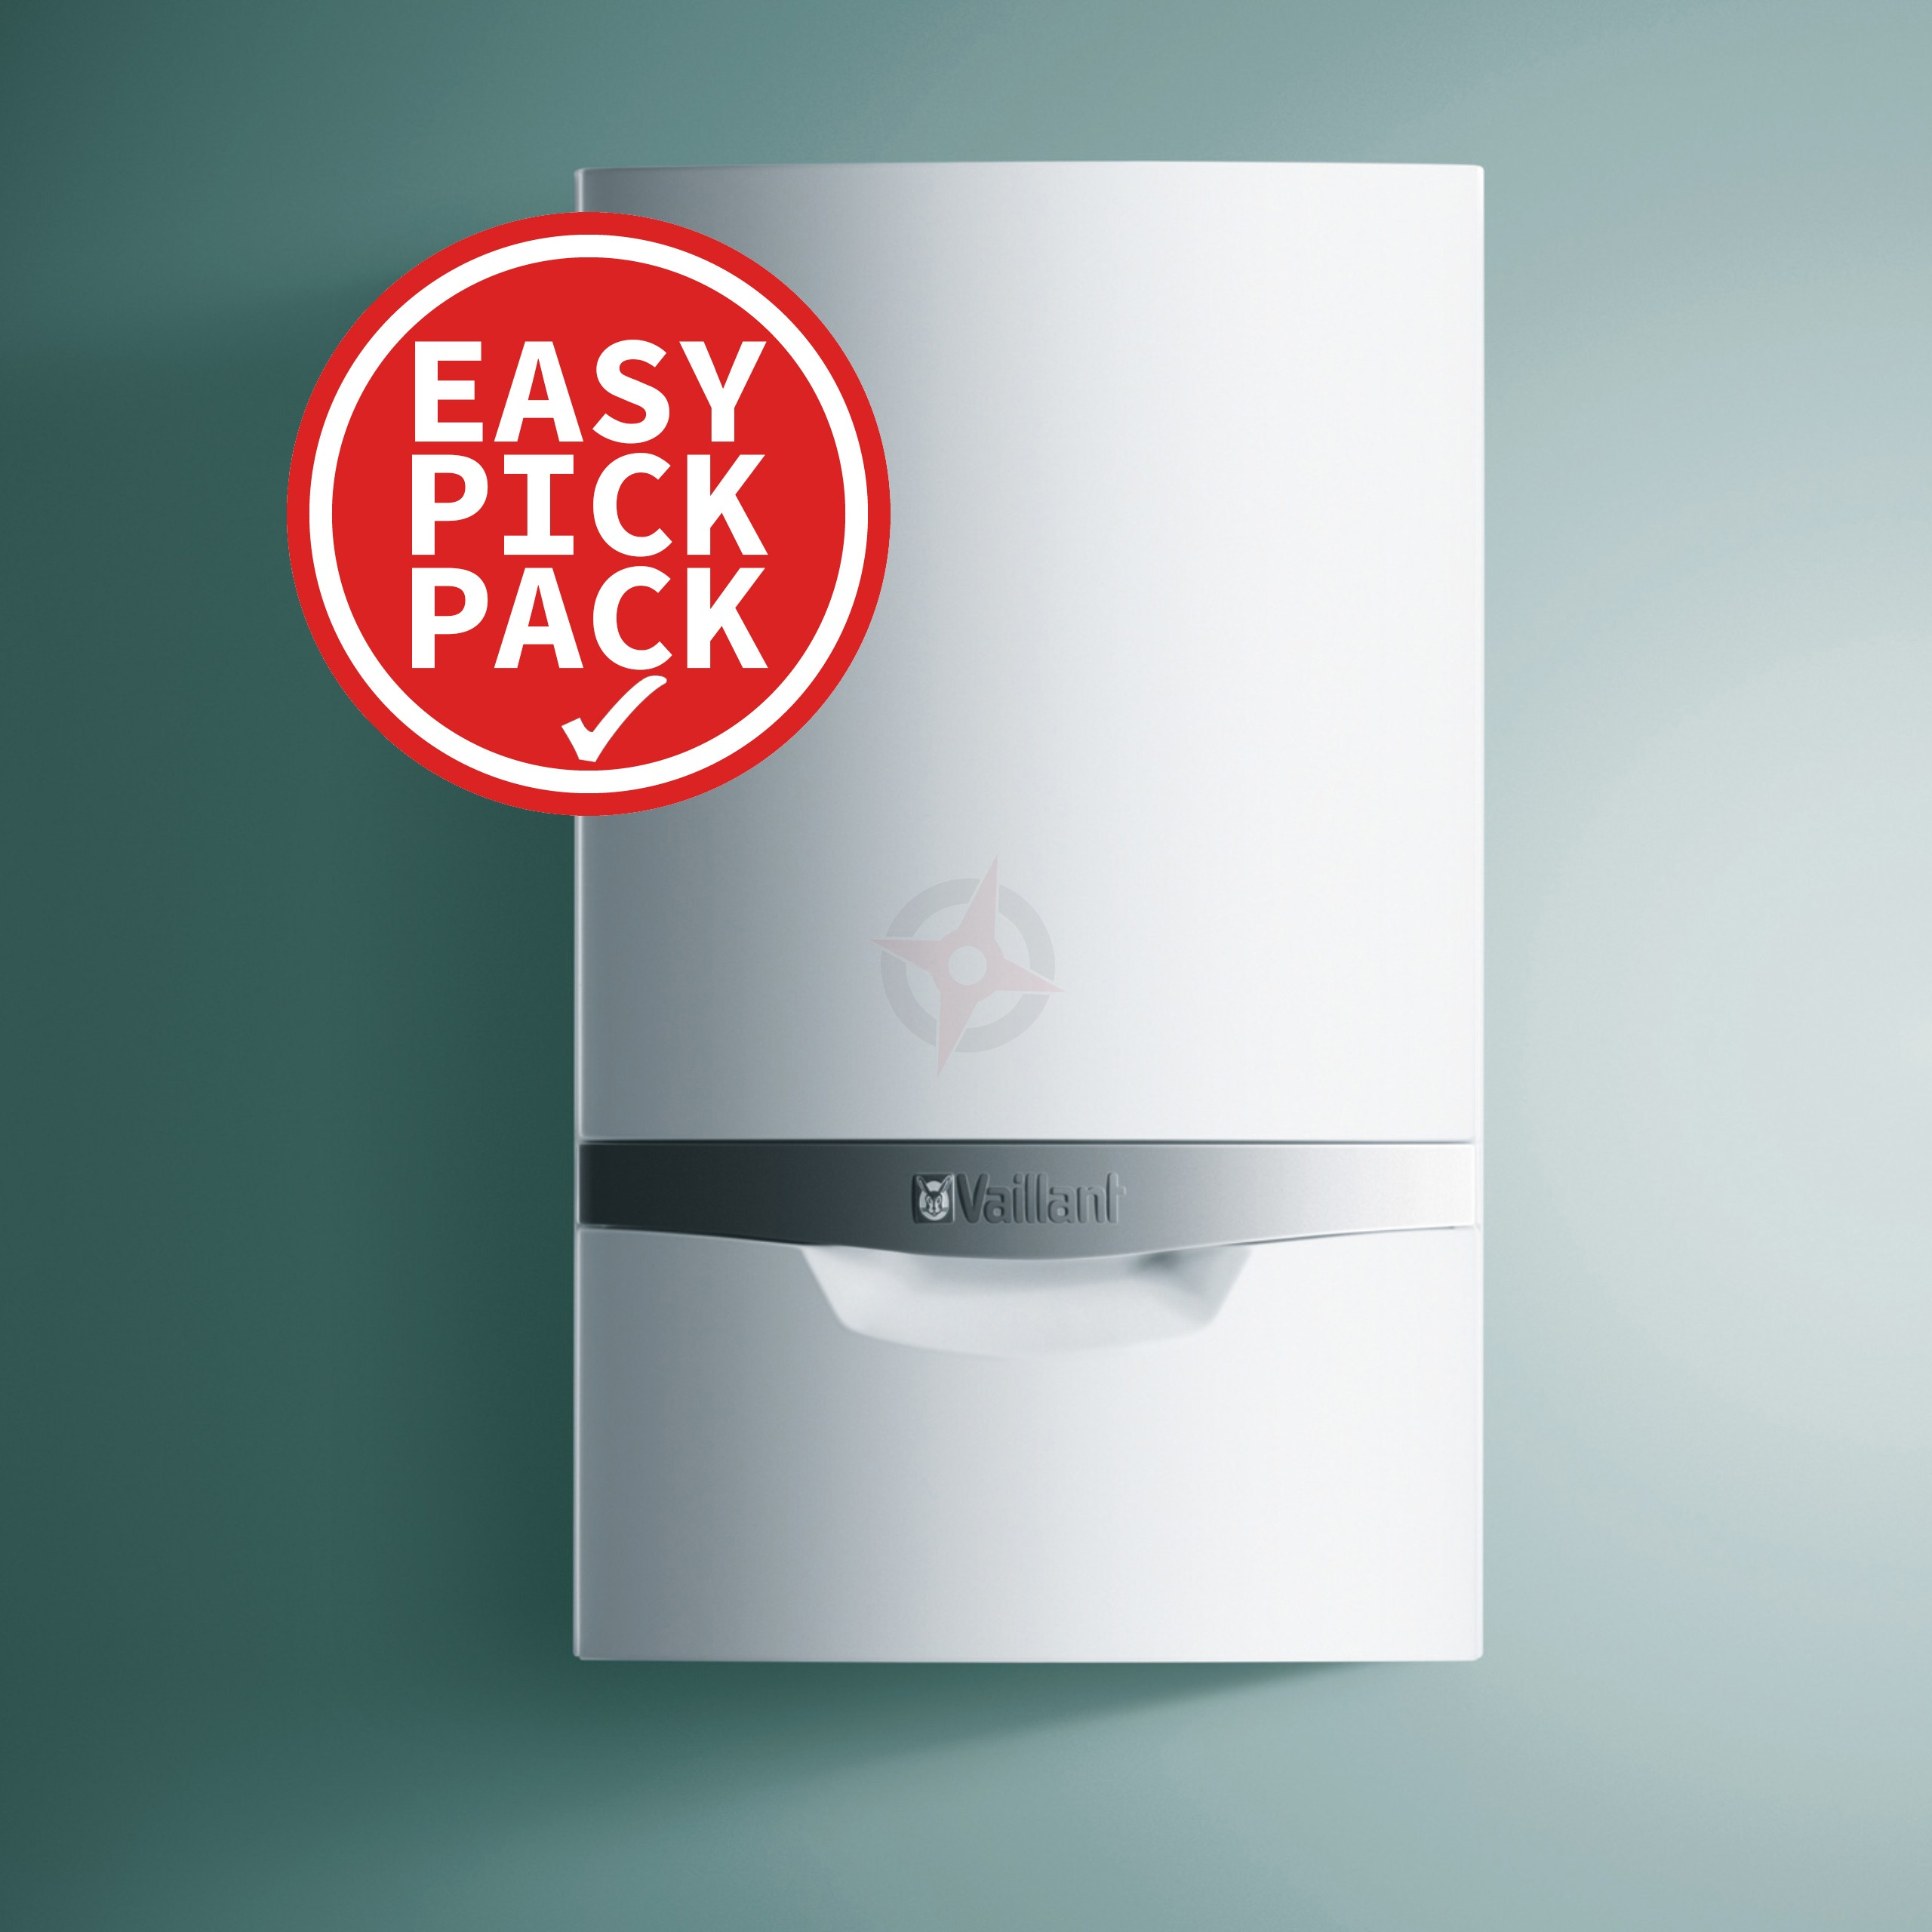 Vaillant ecoTEC Plus 630 (ErP) System Boiler Easy Pick Pack